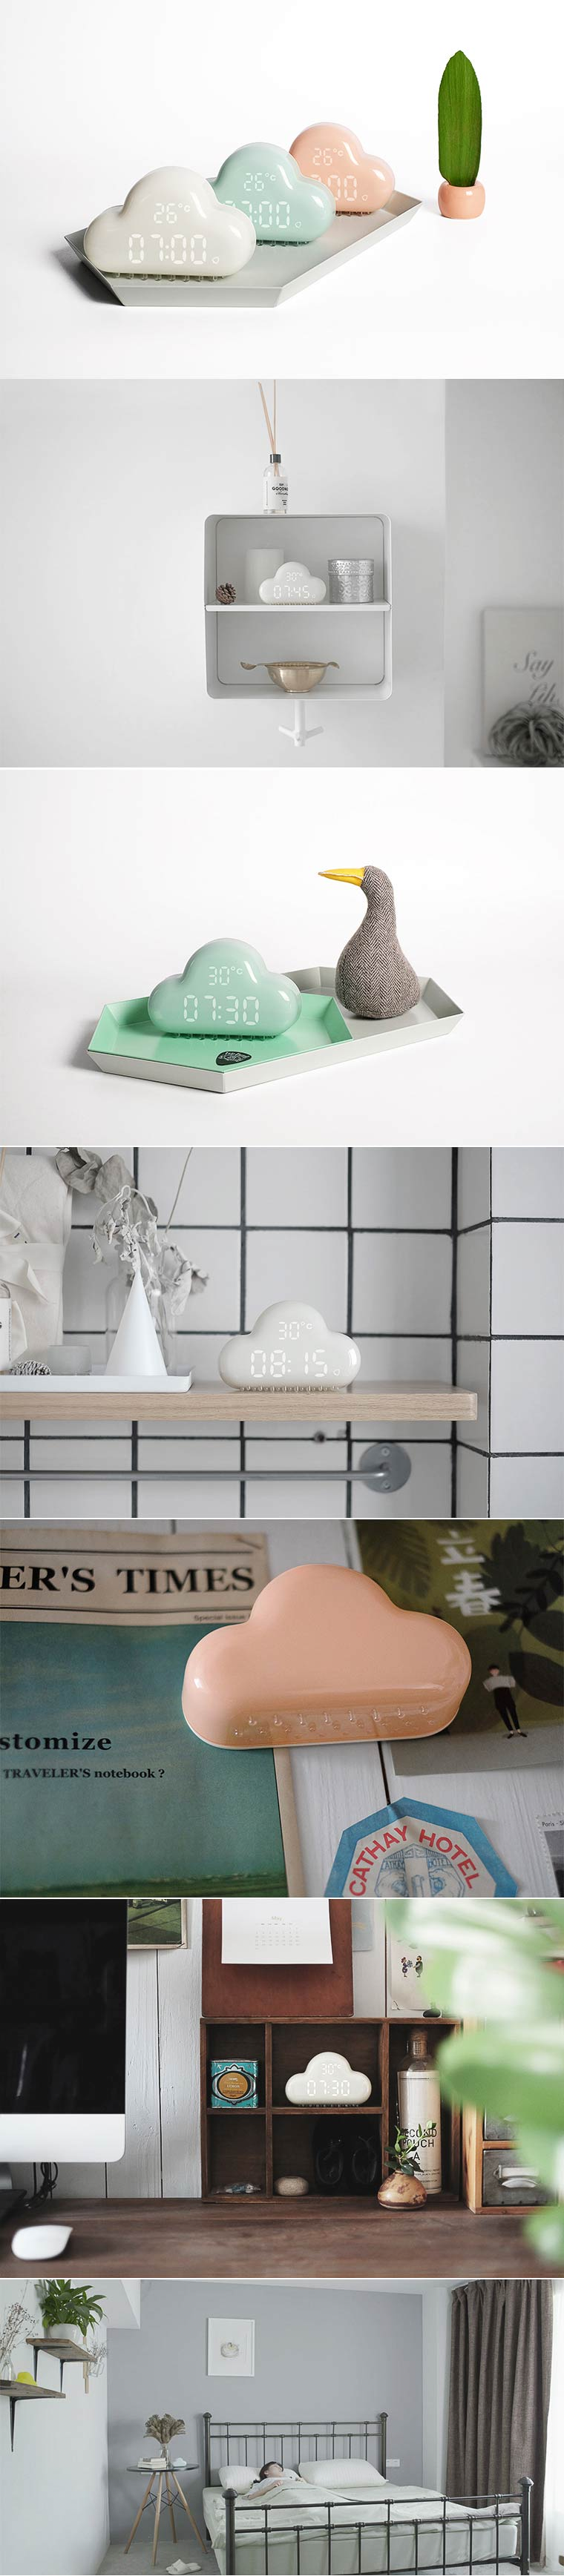 cloud-alarm-clock-description.1.jpg